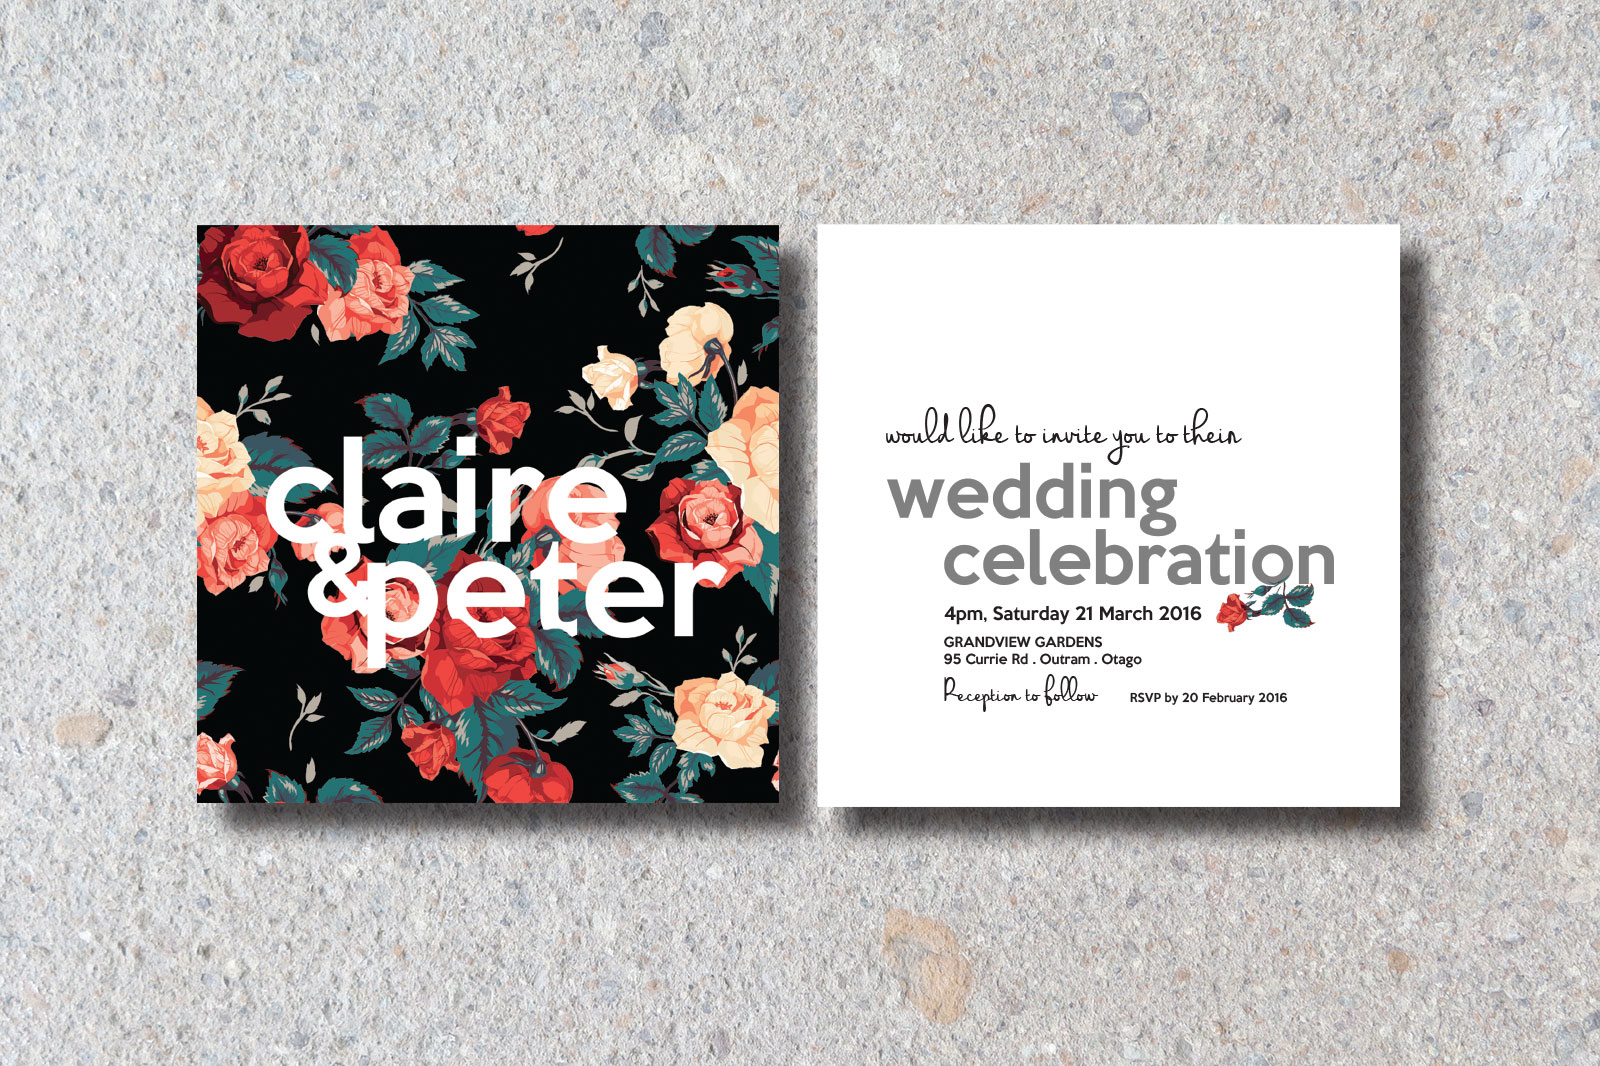 Wedding-Invite-Sample-11-Emma-Francesca.jpg